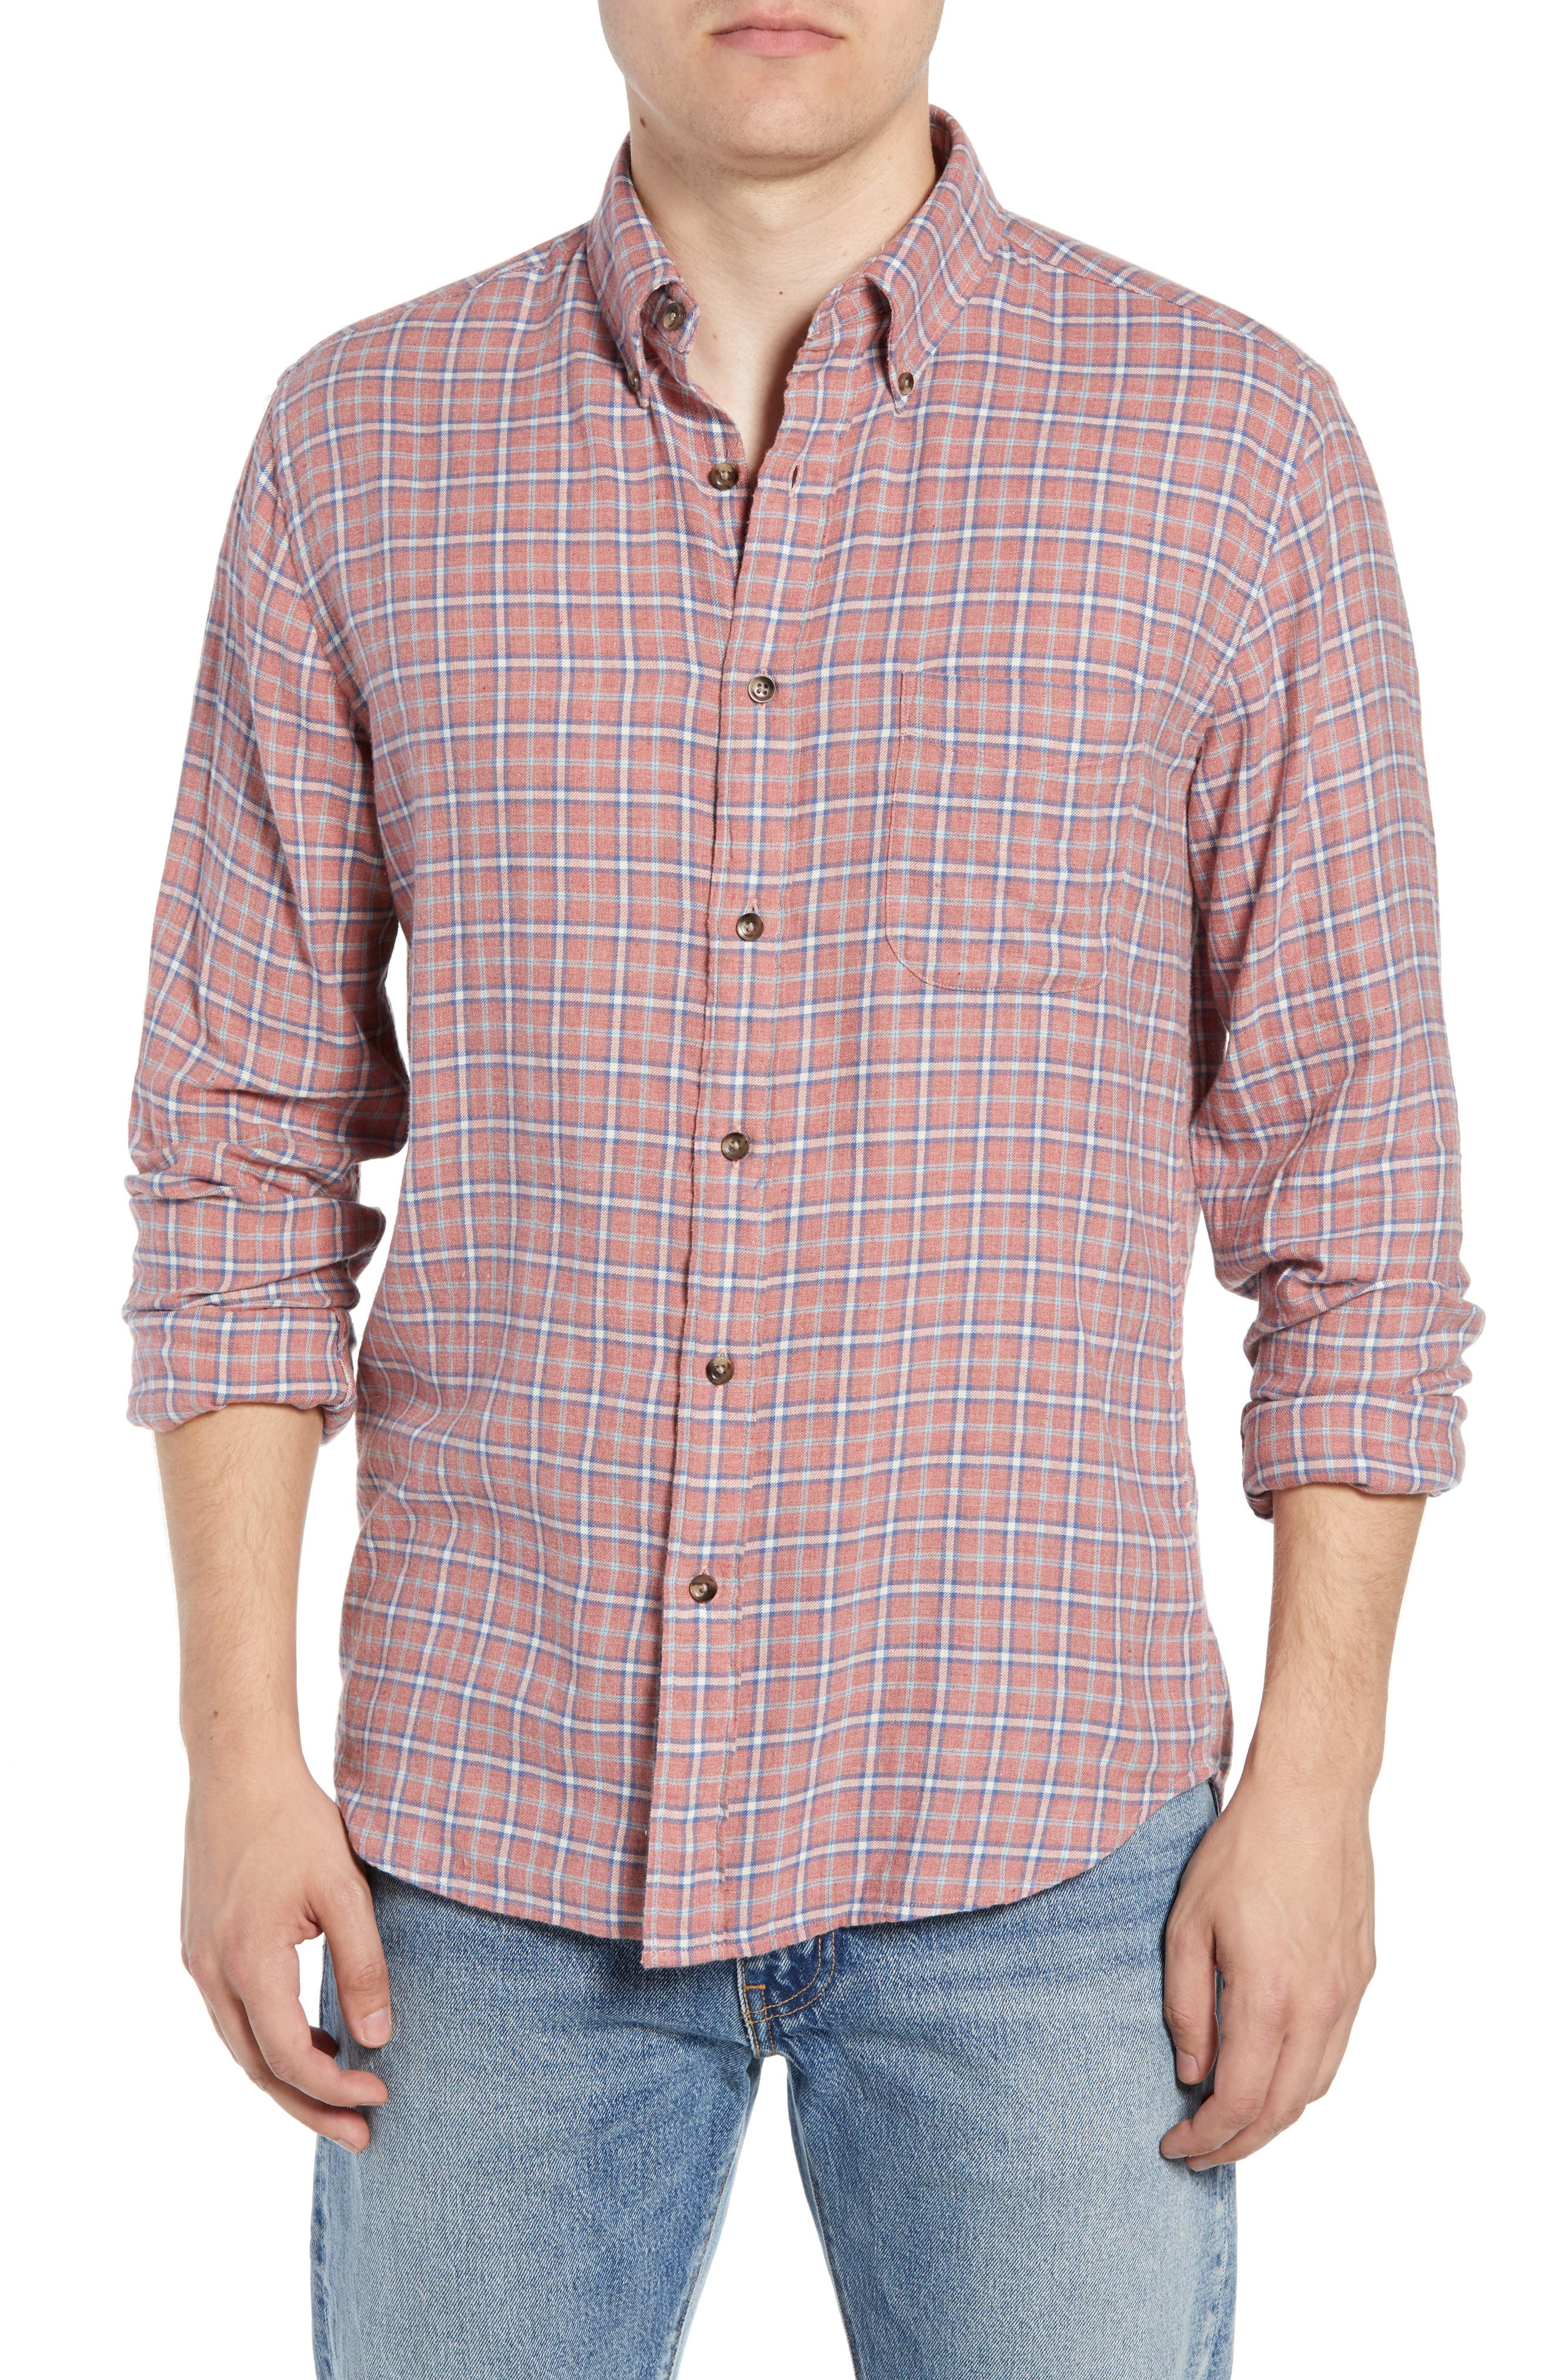 Pacific Check Organic Cotton Sport Shirt,                             Main thumbnail 1, color,                             HEATHER RED MULTI